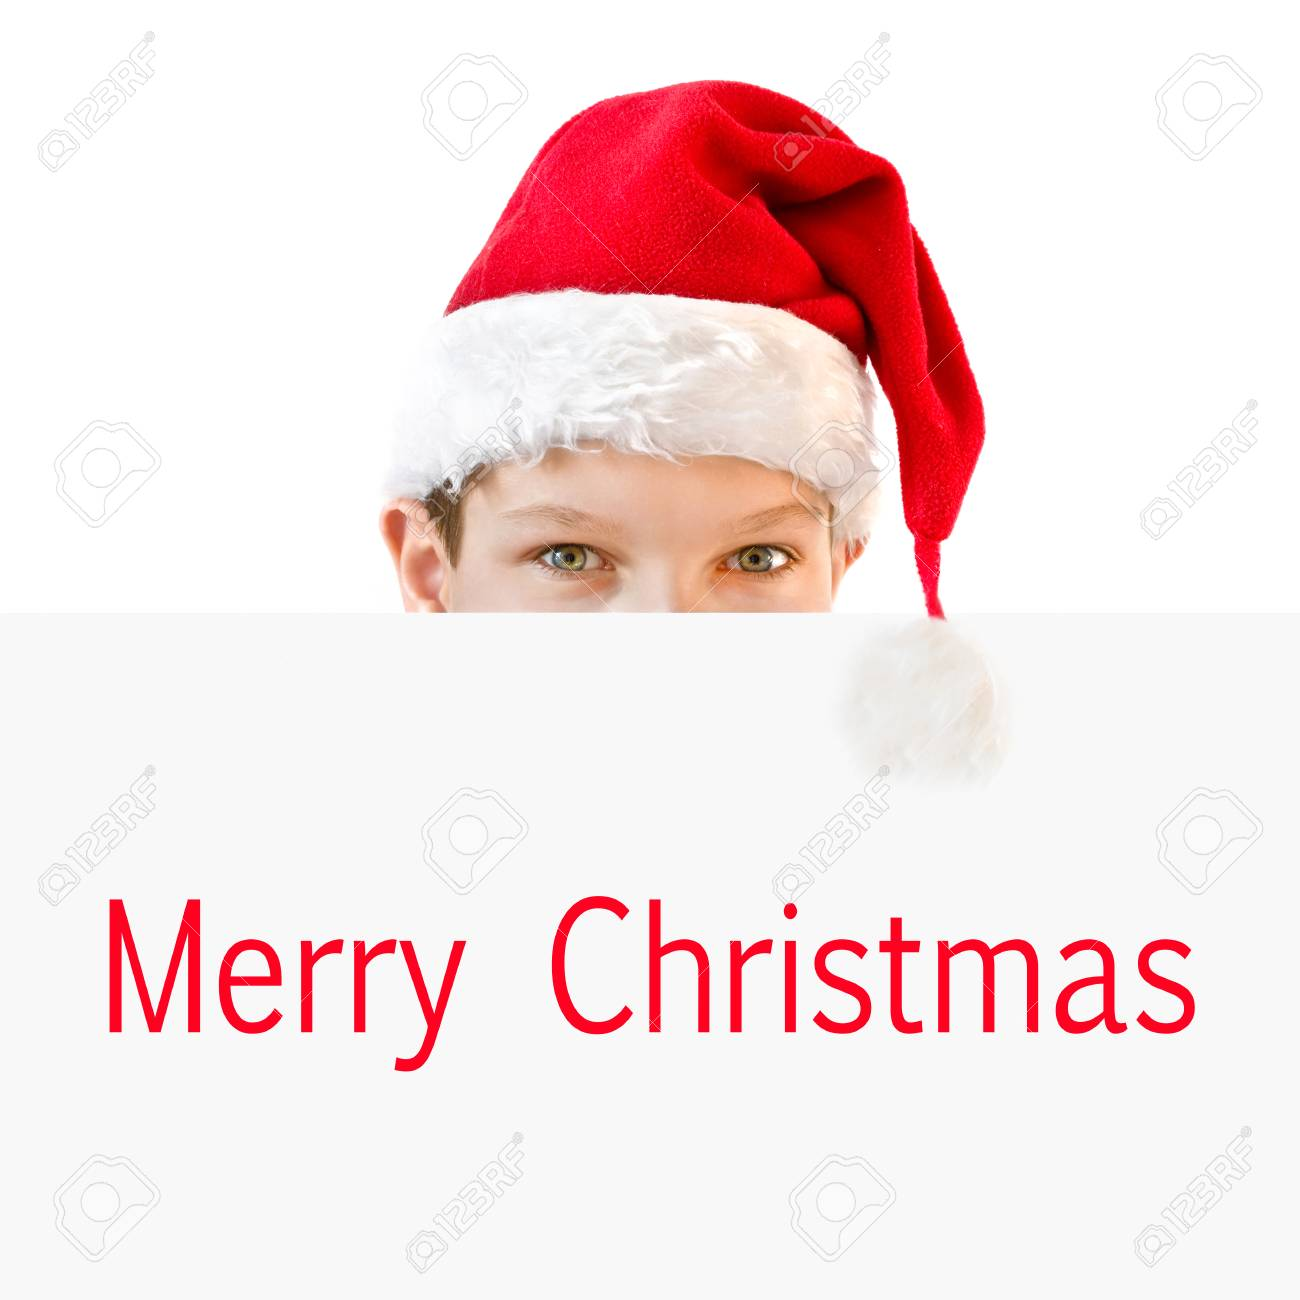 young boy in red santa hat hiding behind a paper merry christmas